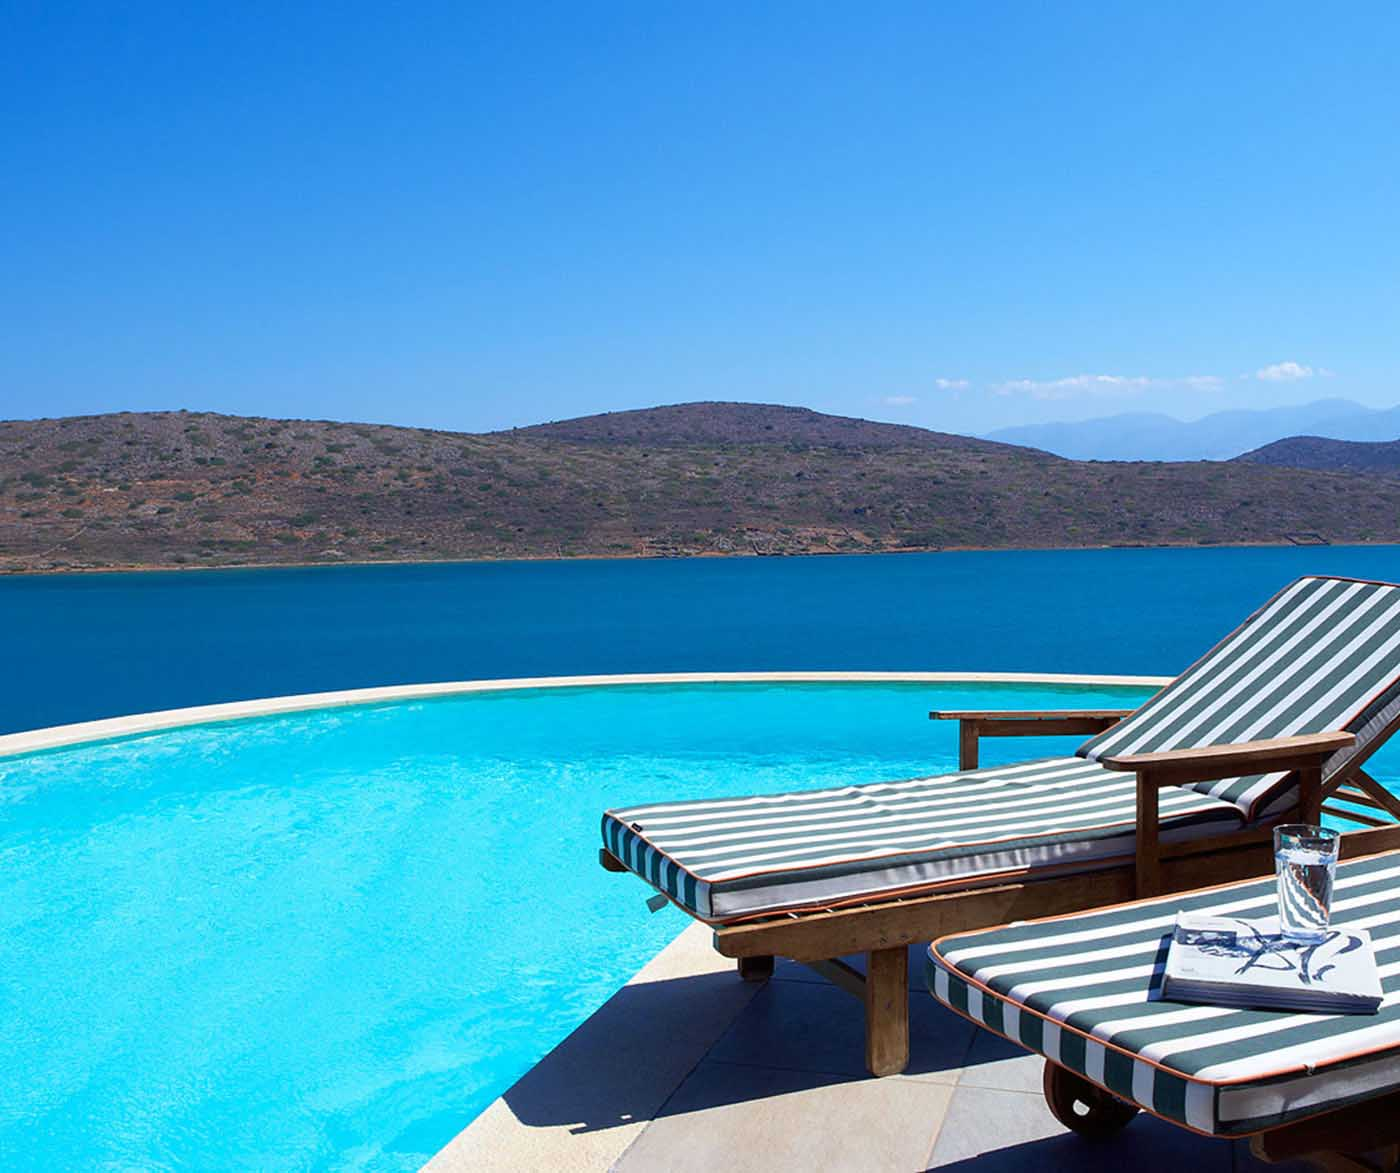 Angeliana hotels & resorts, 50% discount for early bookings, Angeliana, Rethymnon, Crete, Greece